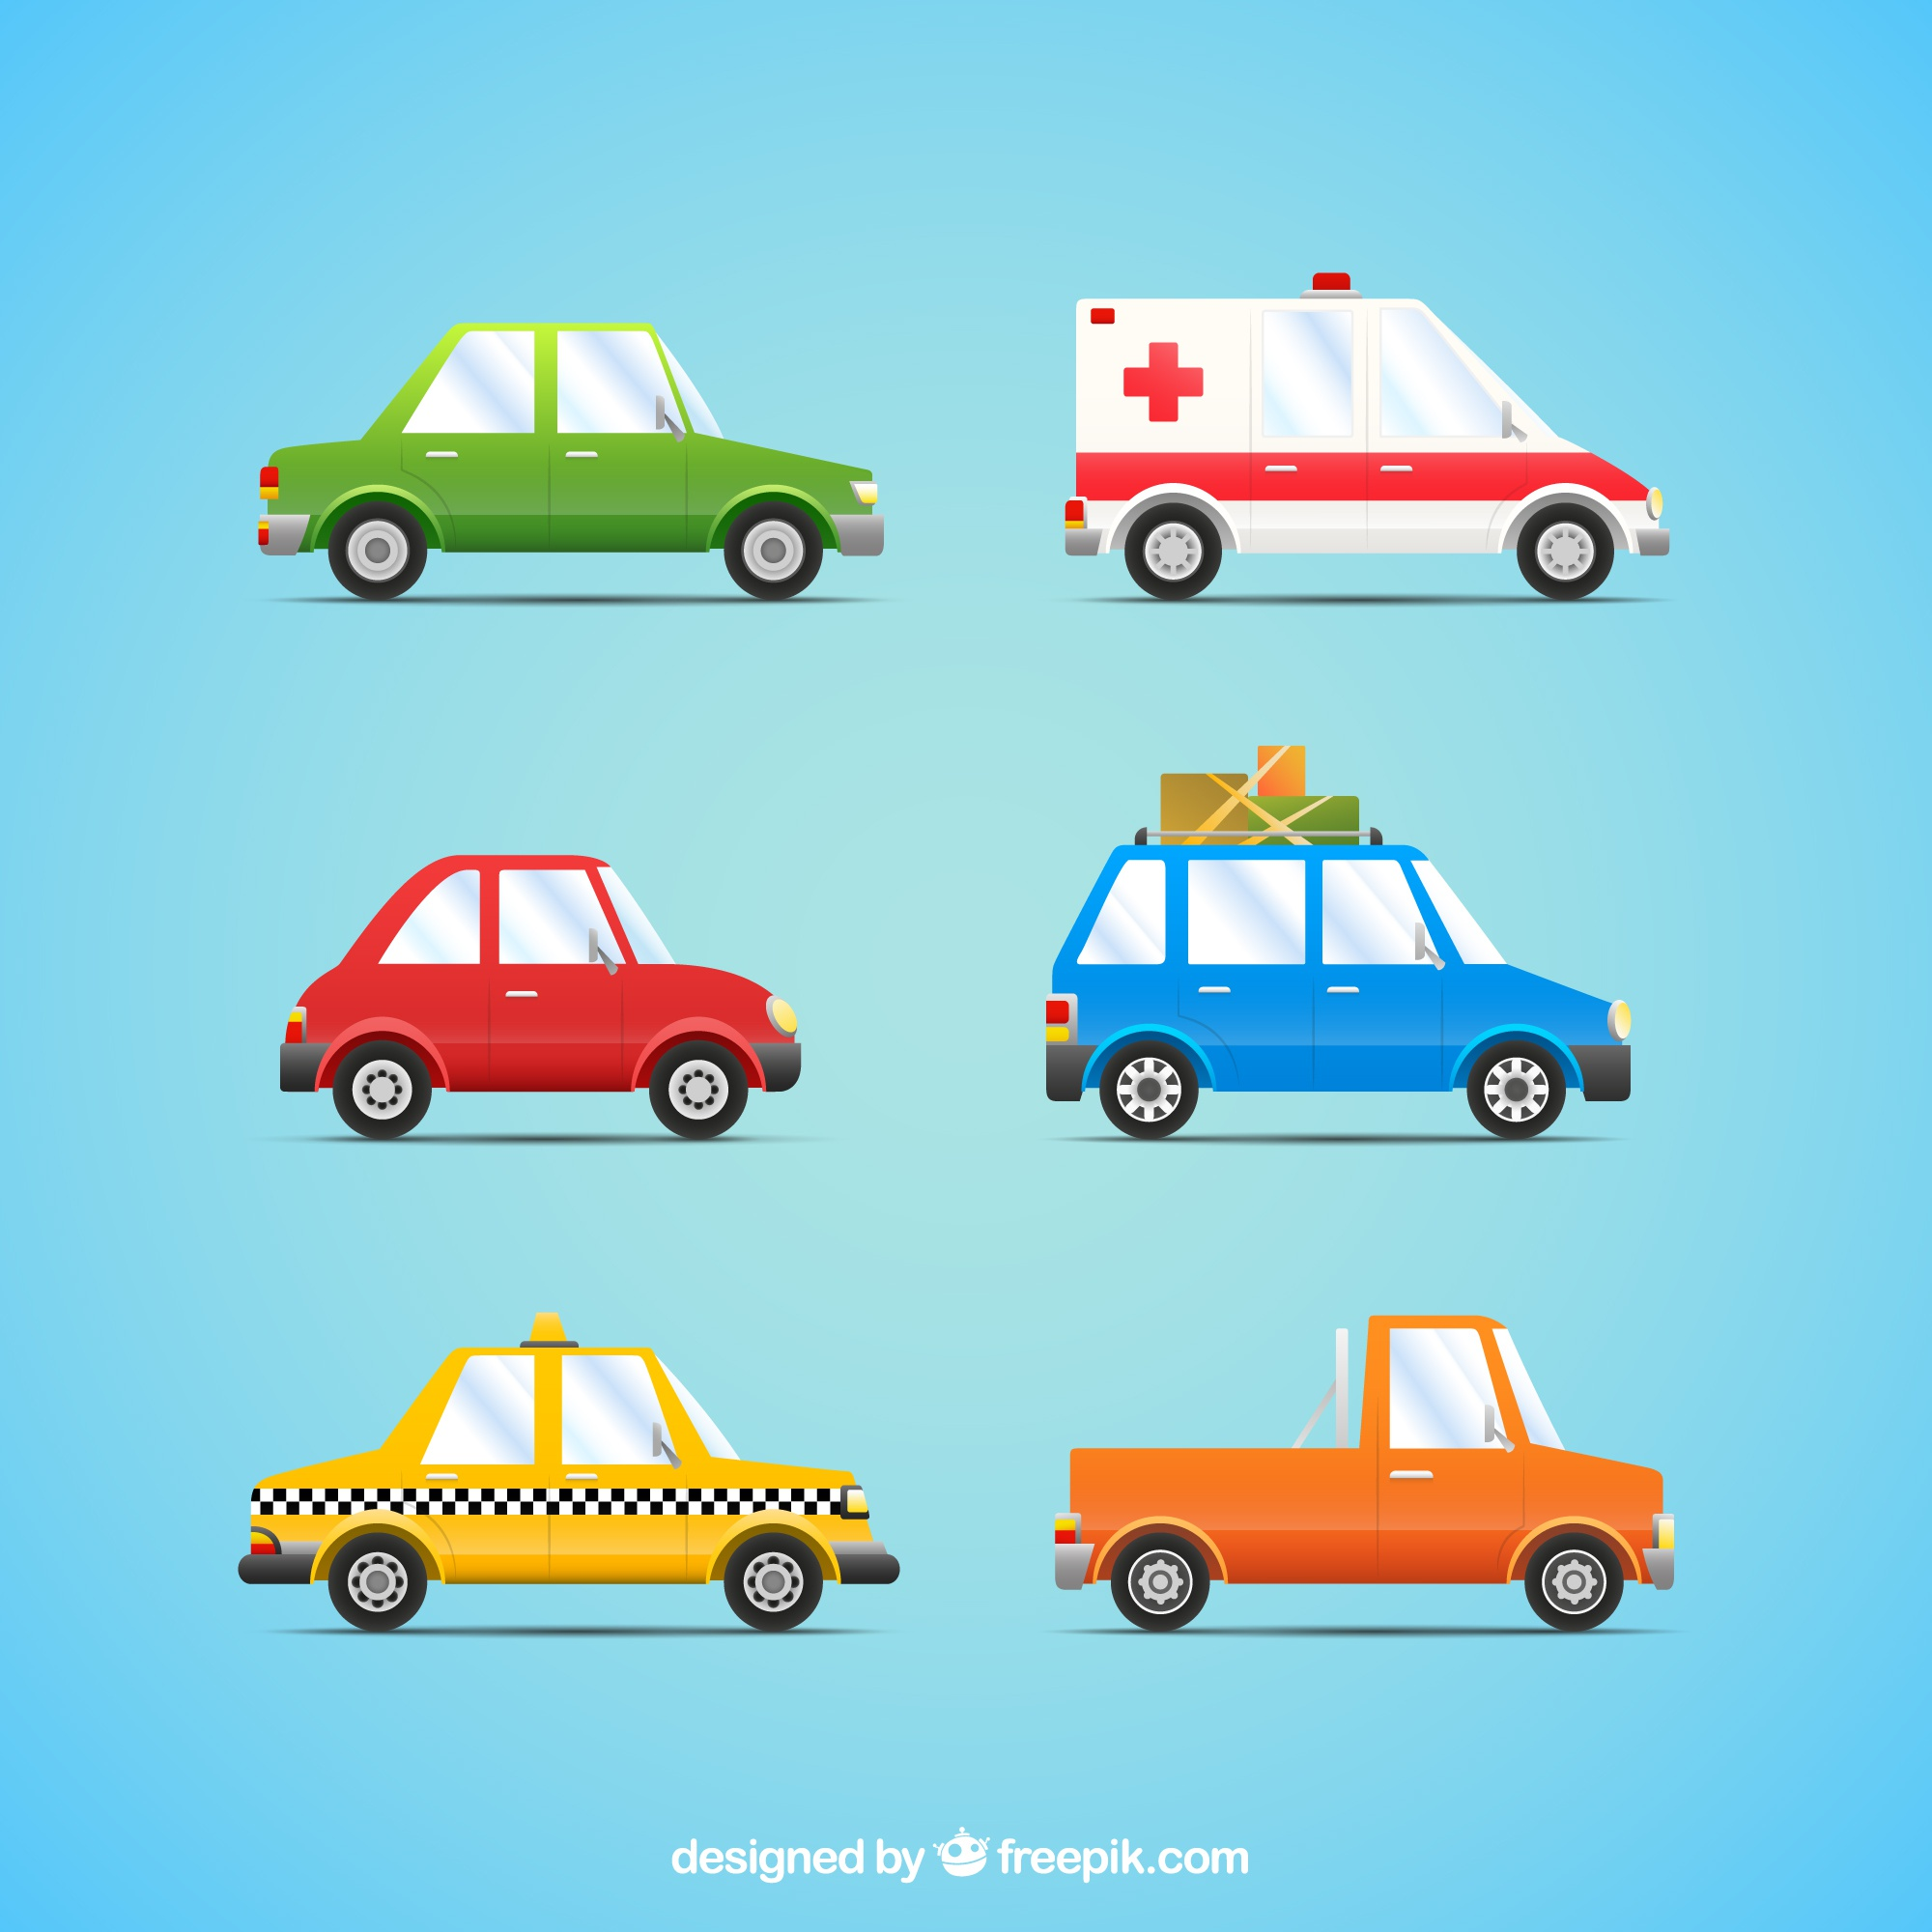 Cars collection in cartoon style